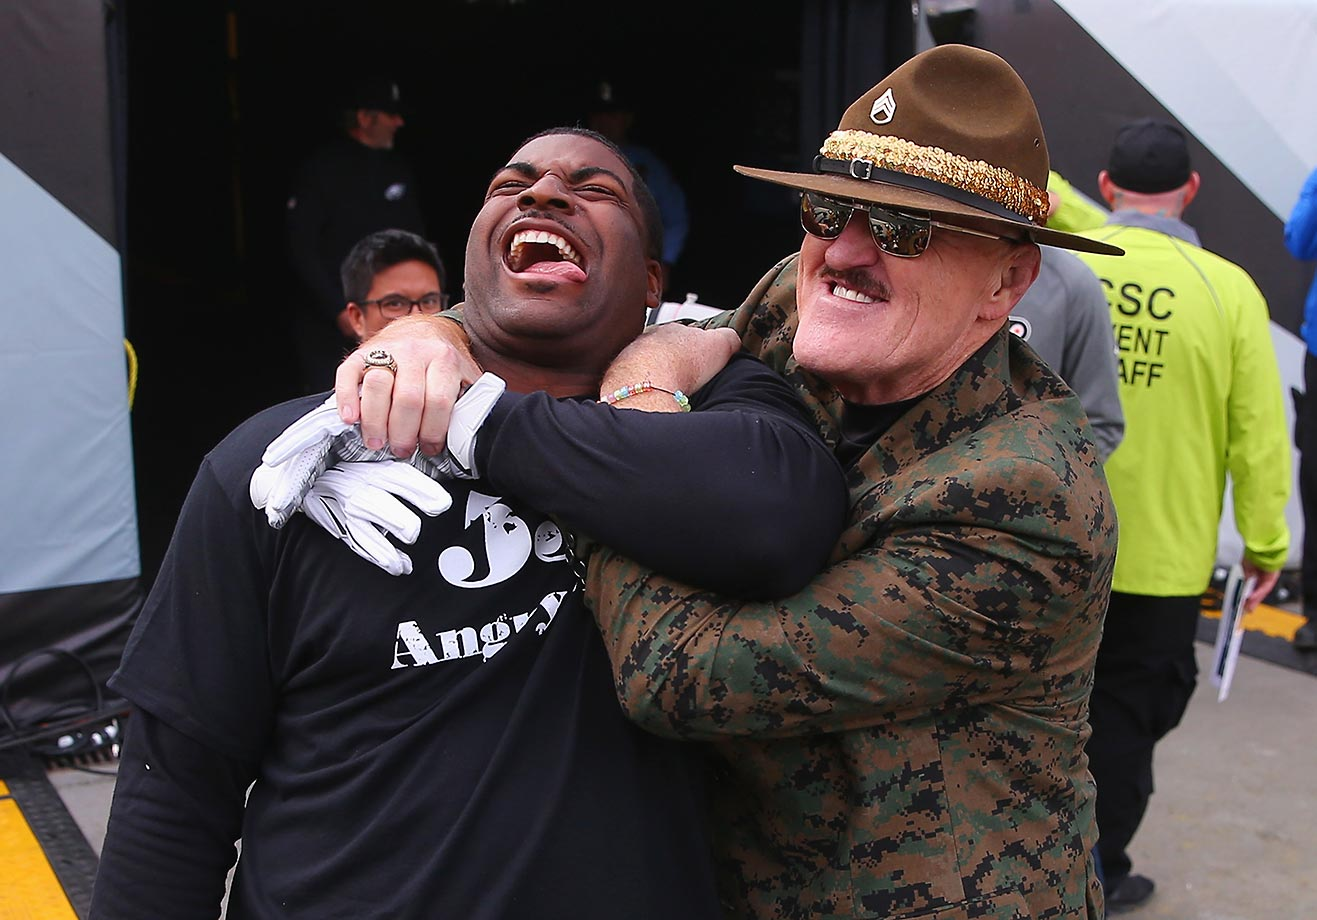 Vinny Curry of the Philadelphia Eagles jokes around with Sgt. Slaughter of the WWE before the game.